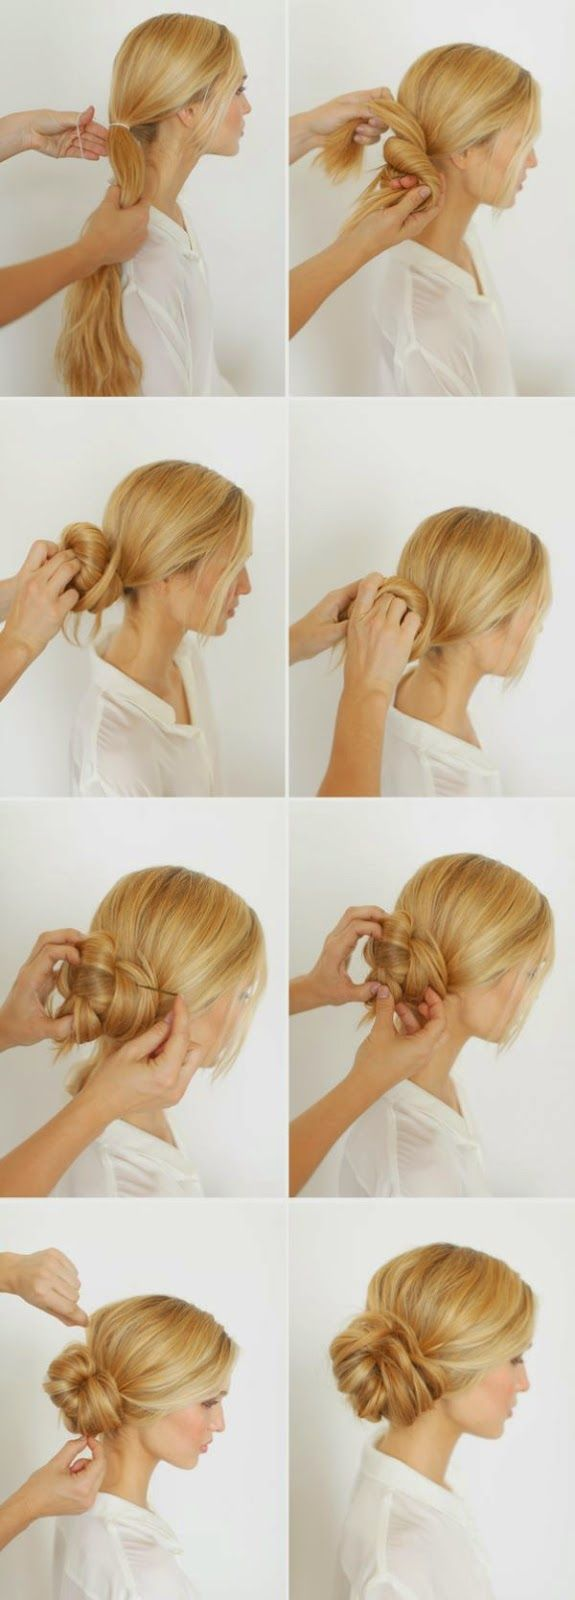 best peinados hairstyles images on pinterest hairstyle ideas